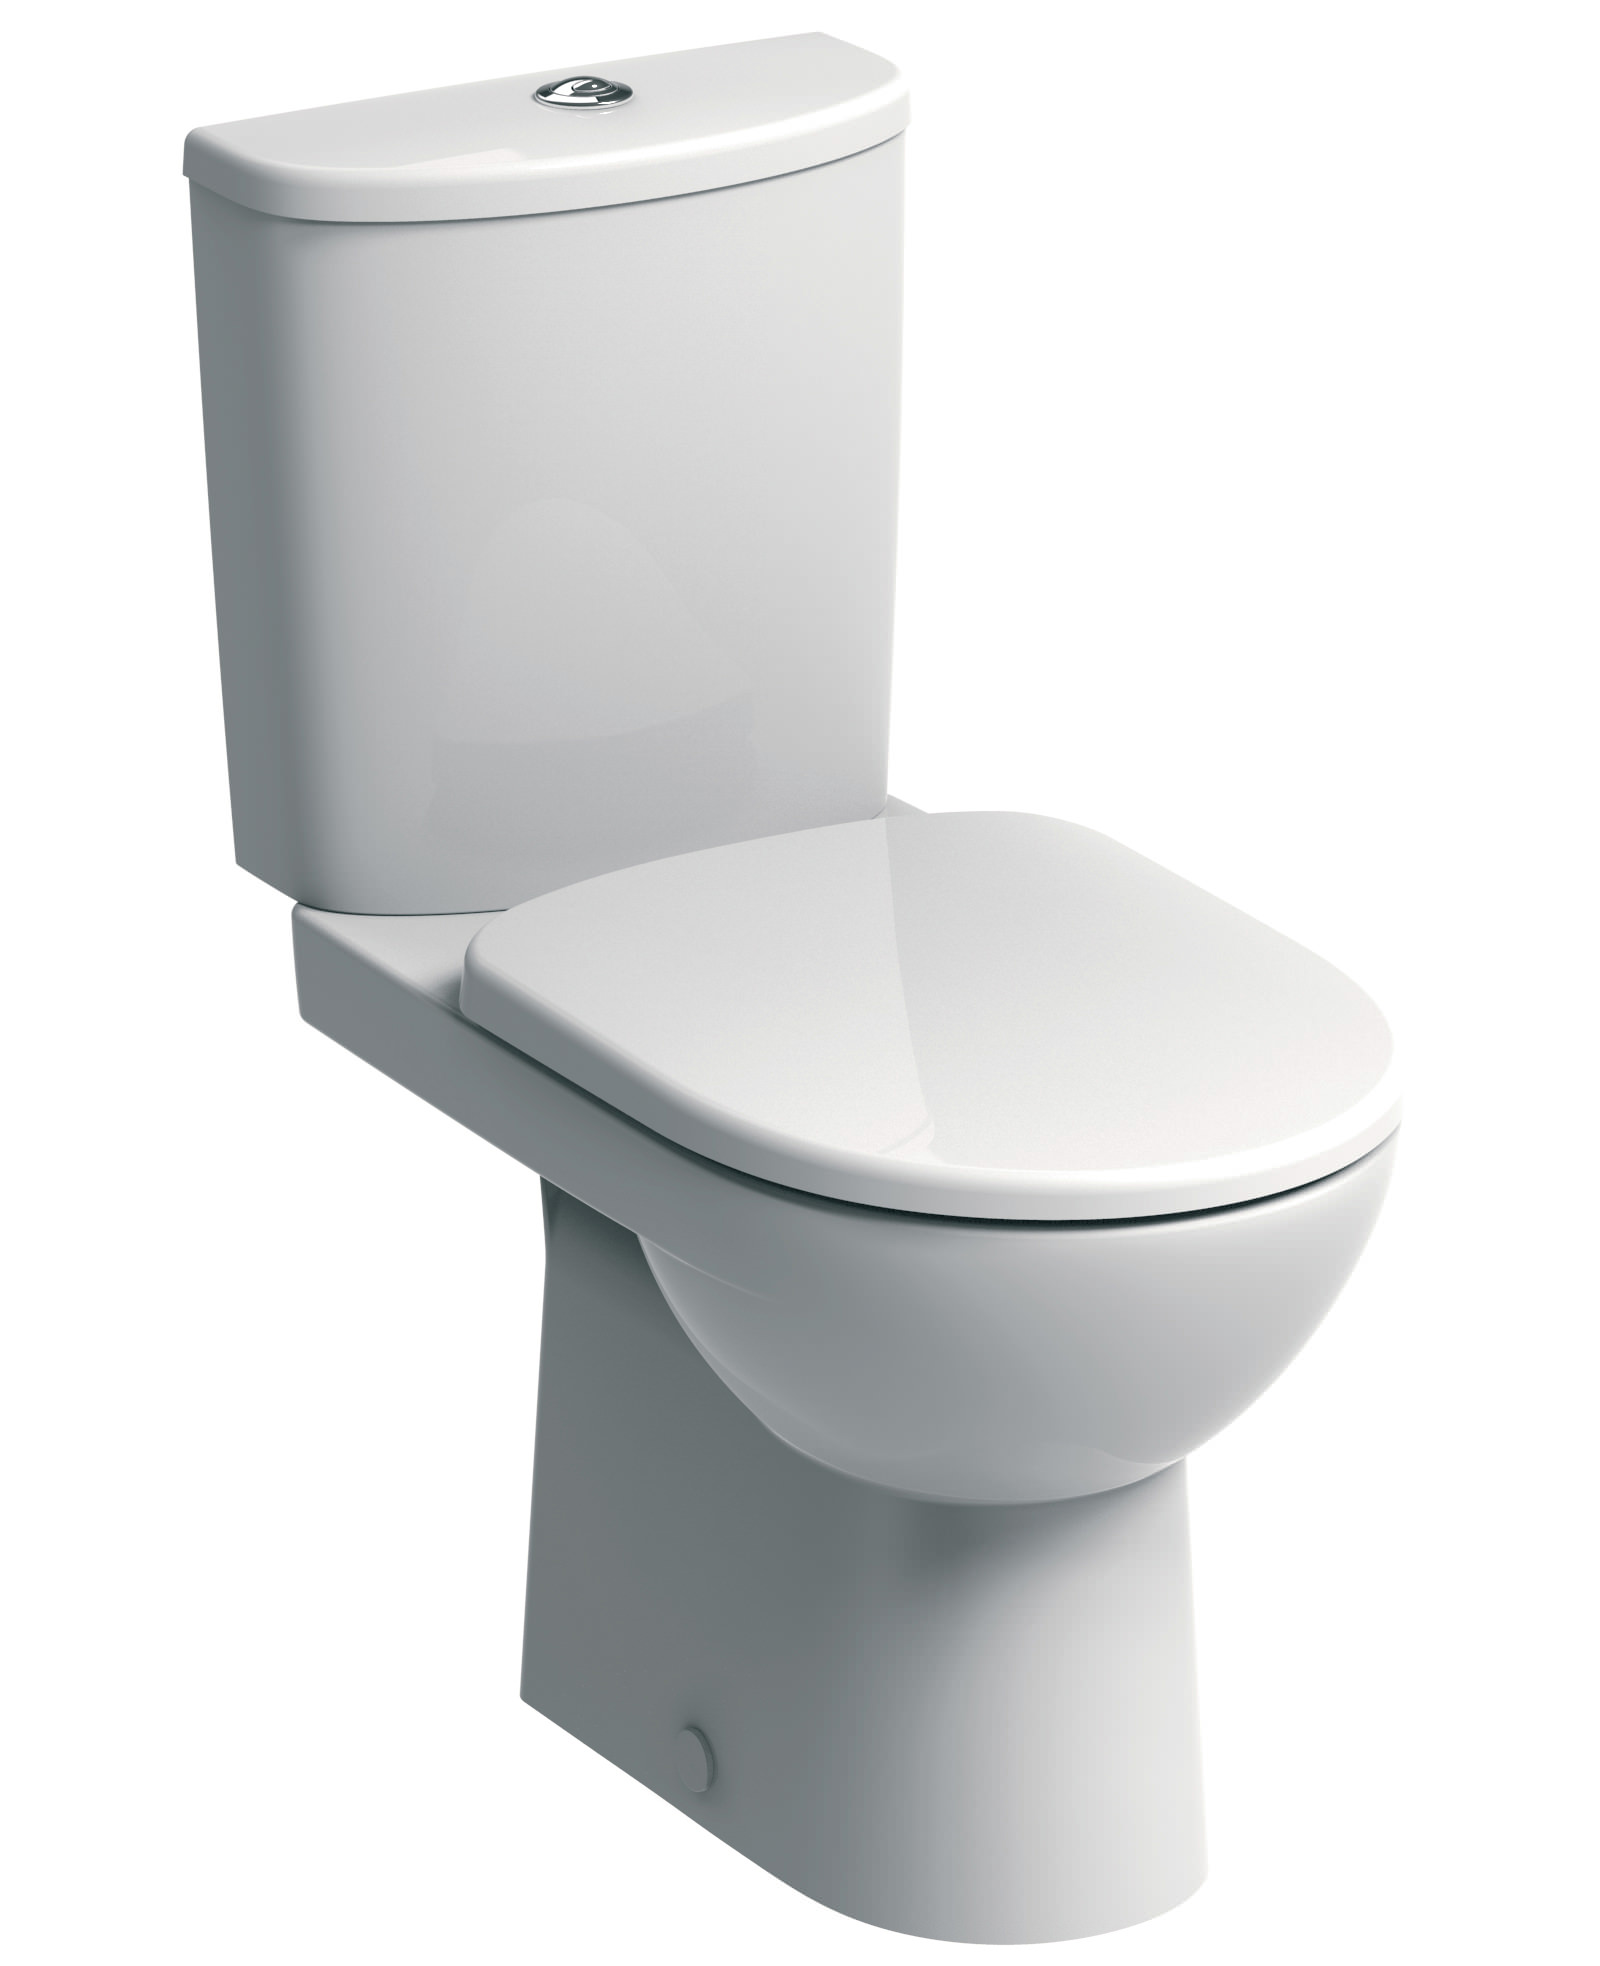 40cm round toilet seat.  Twyford E100 Round Premium Close Coupled WC Pan And Cistern 680mm